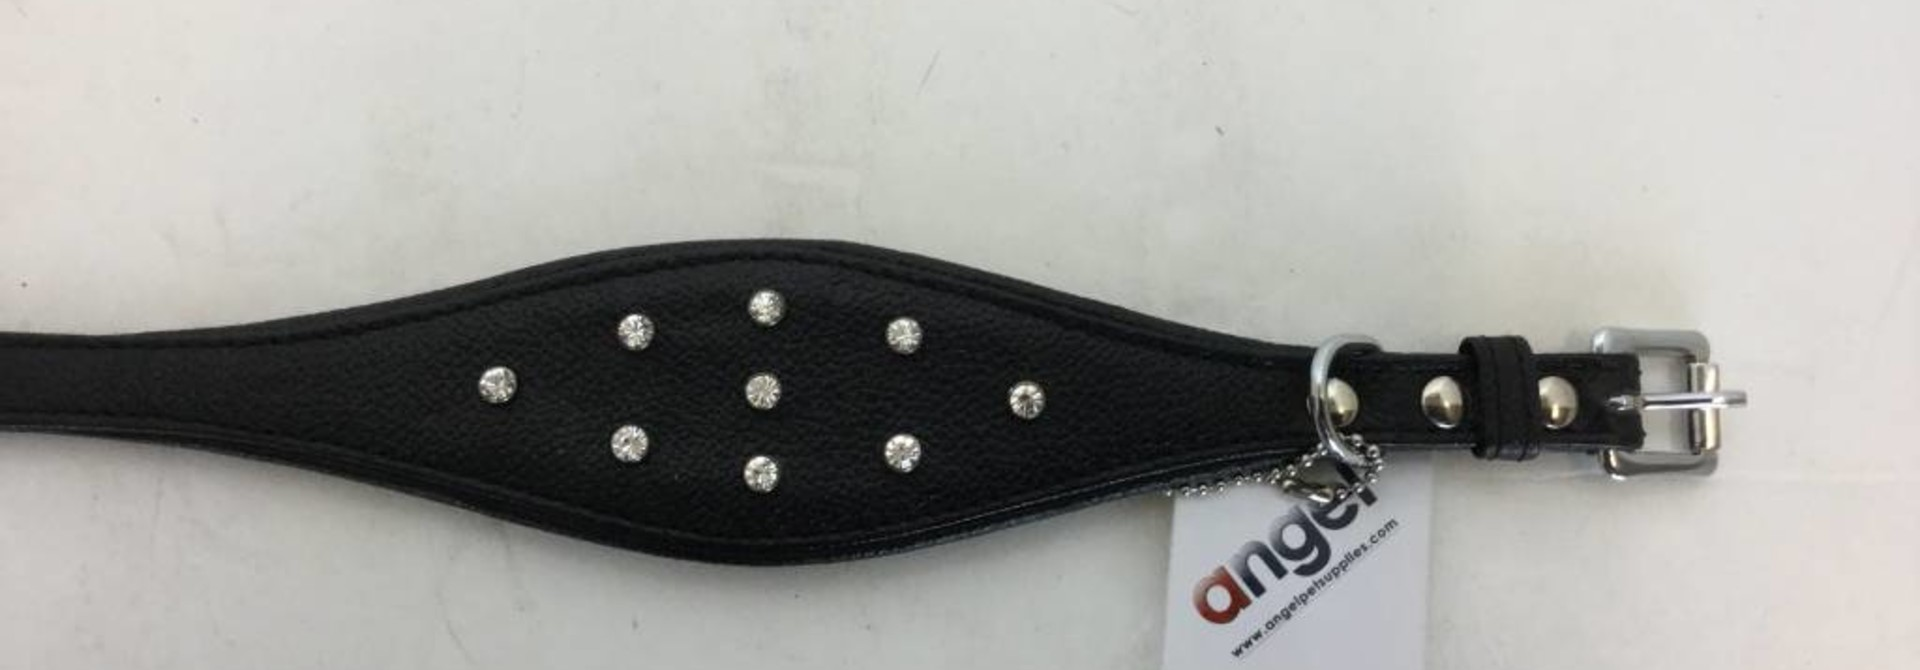 "Angel Collar HND RHN Black 16"" x 2.25"""